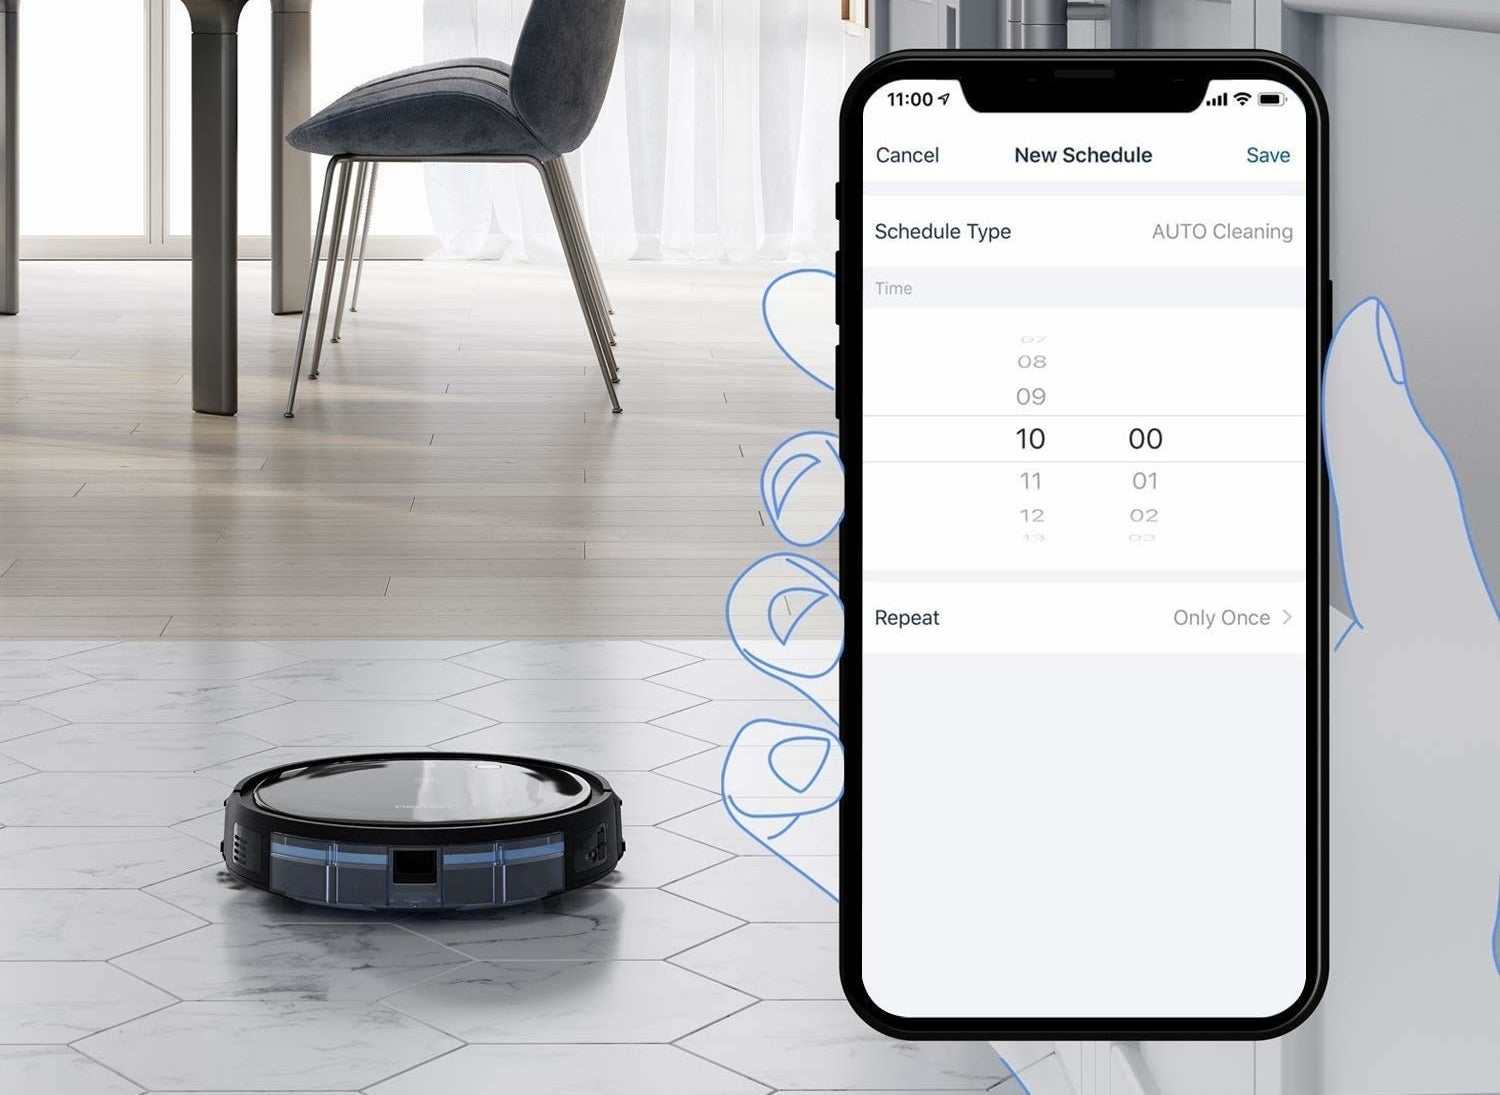 Vacuum cleaning robot can be scheduled through the mobile app.